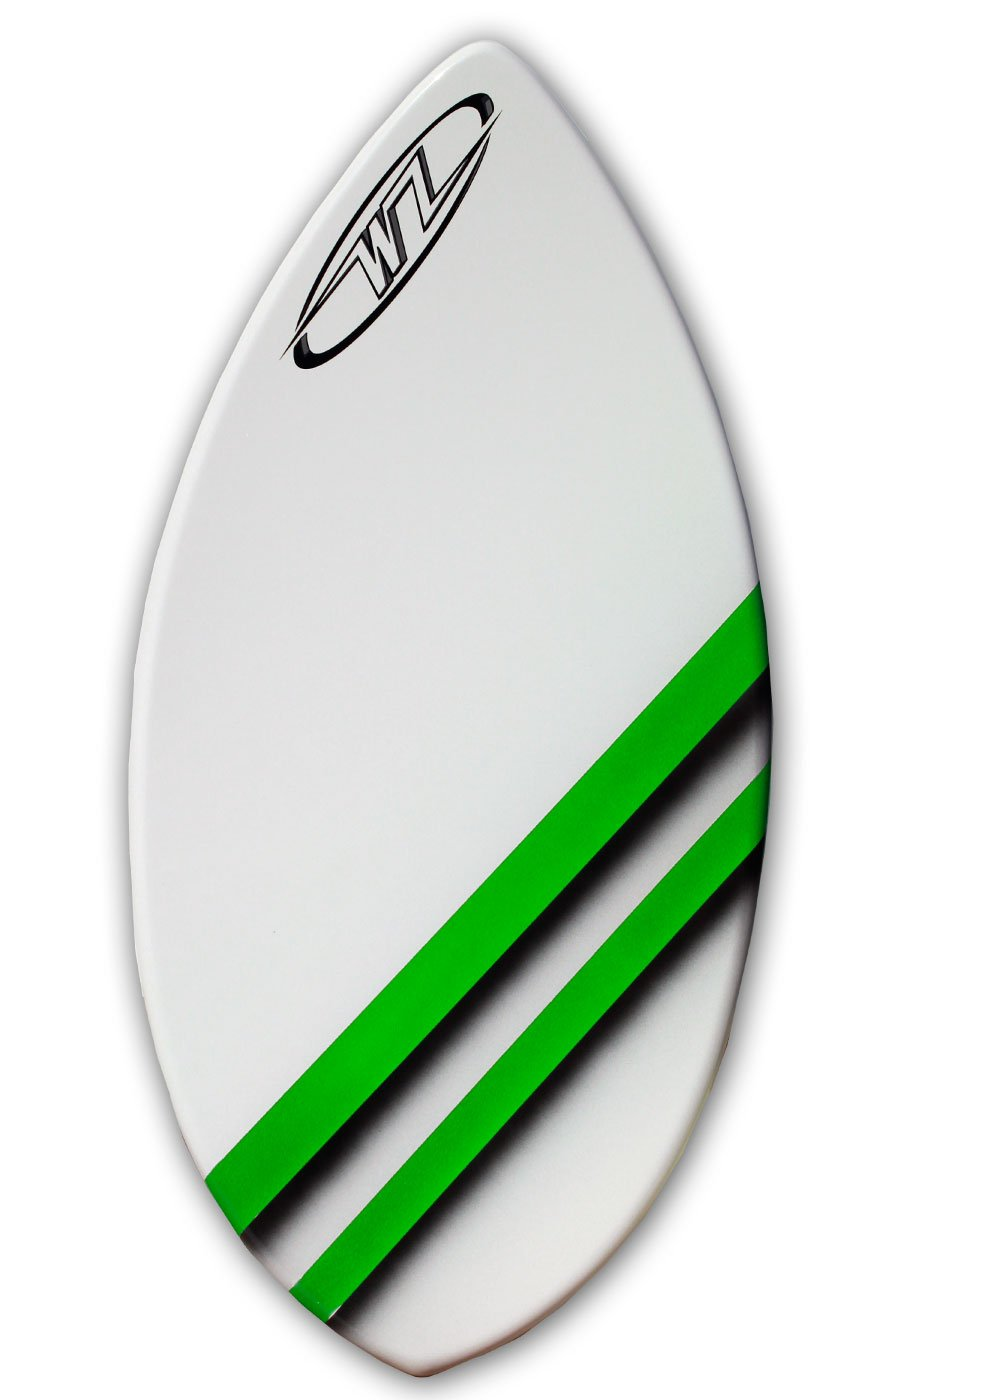 Wave Zone Edge - 41'' Fiberglass Skimboard for Riders up to 130 Lbs - Green